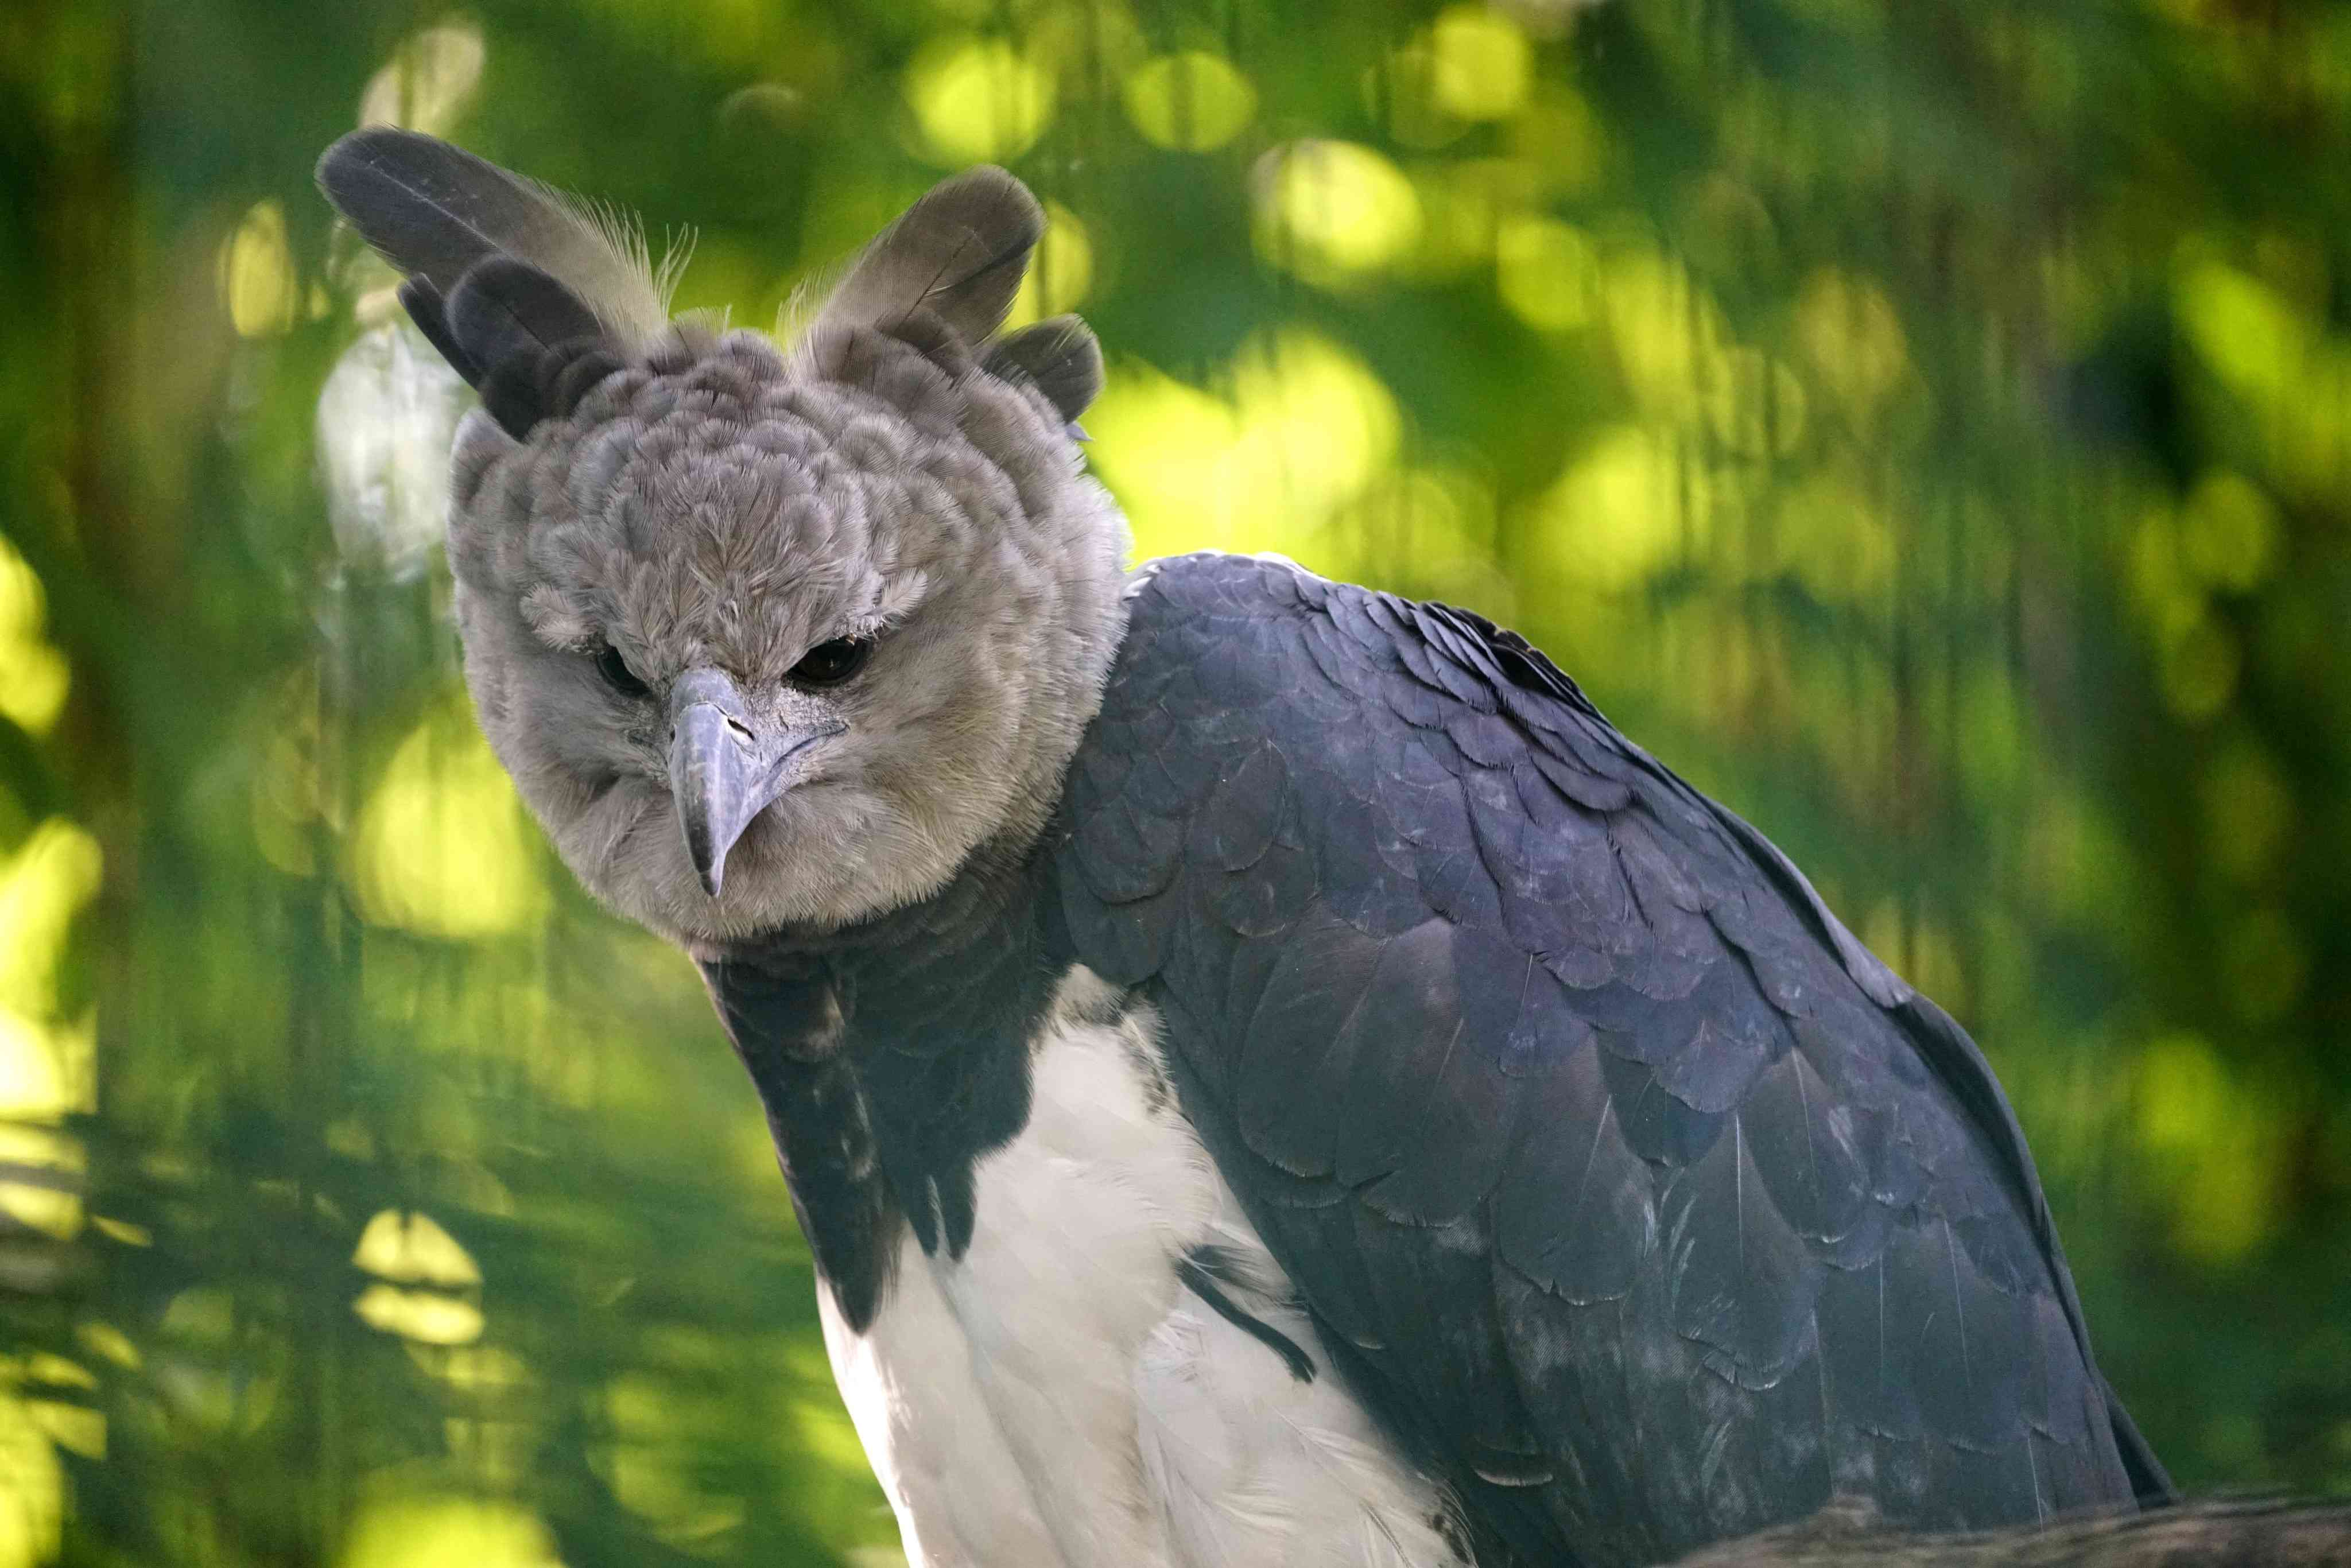 A harpy eagle with gray head and raised crown feathers perches in a forest.